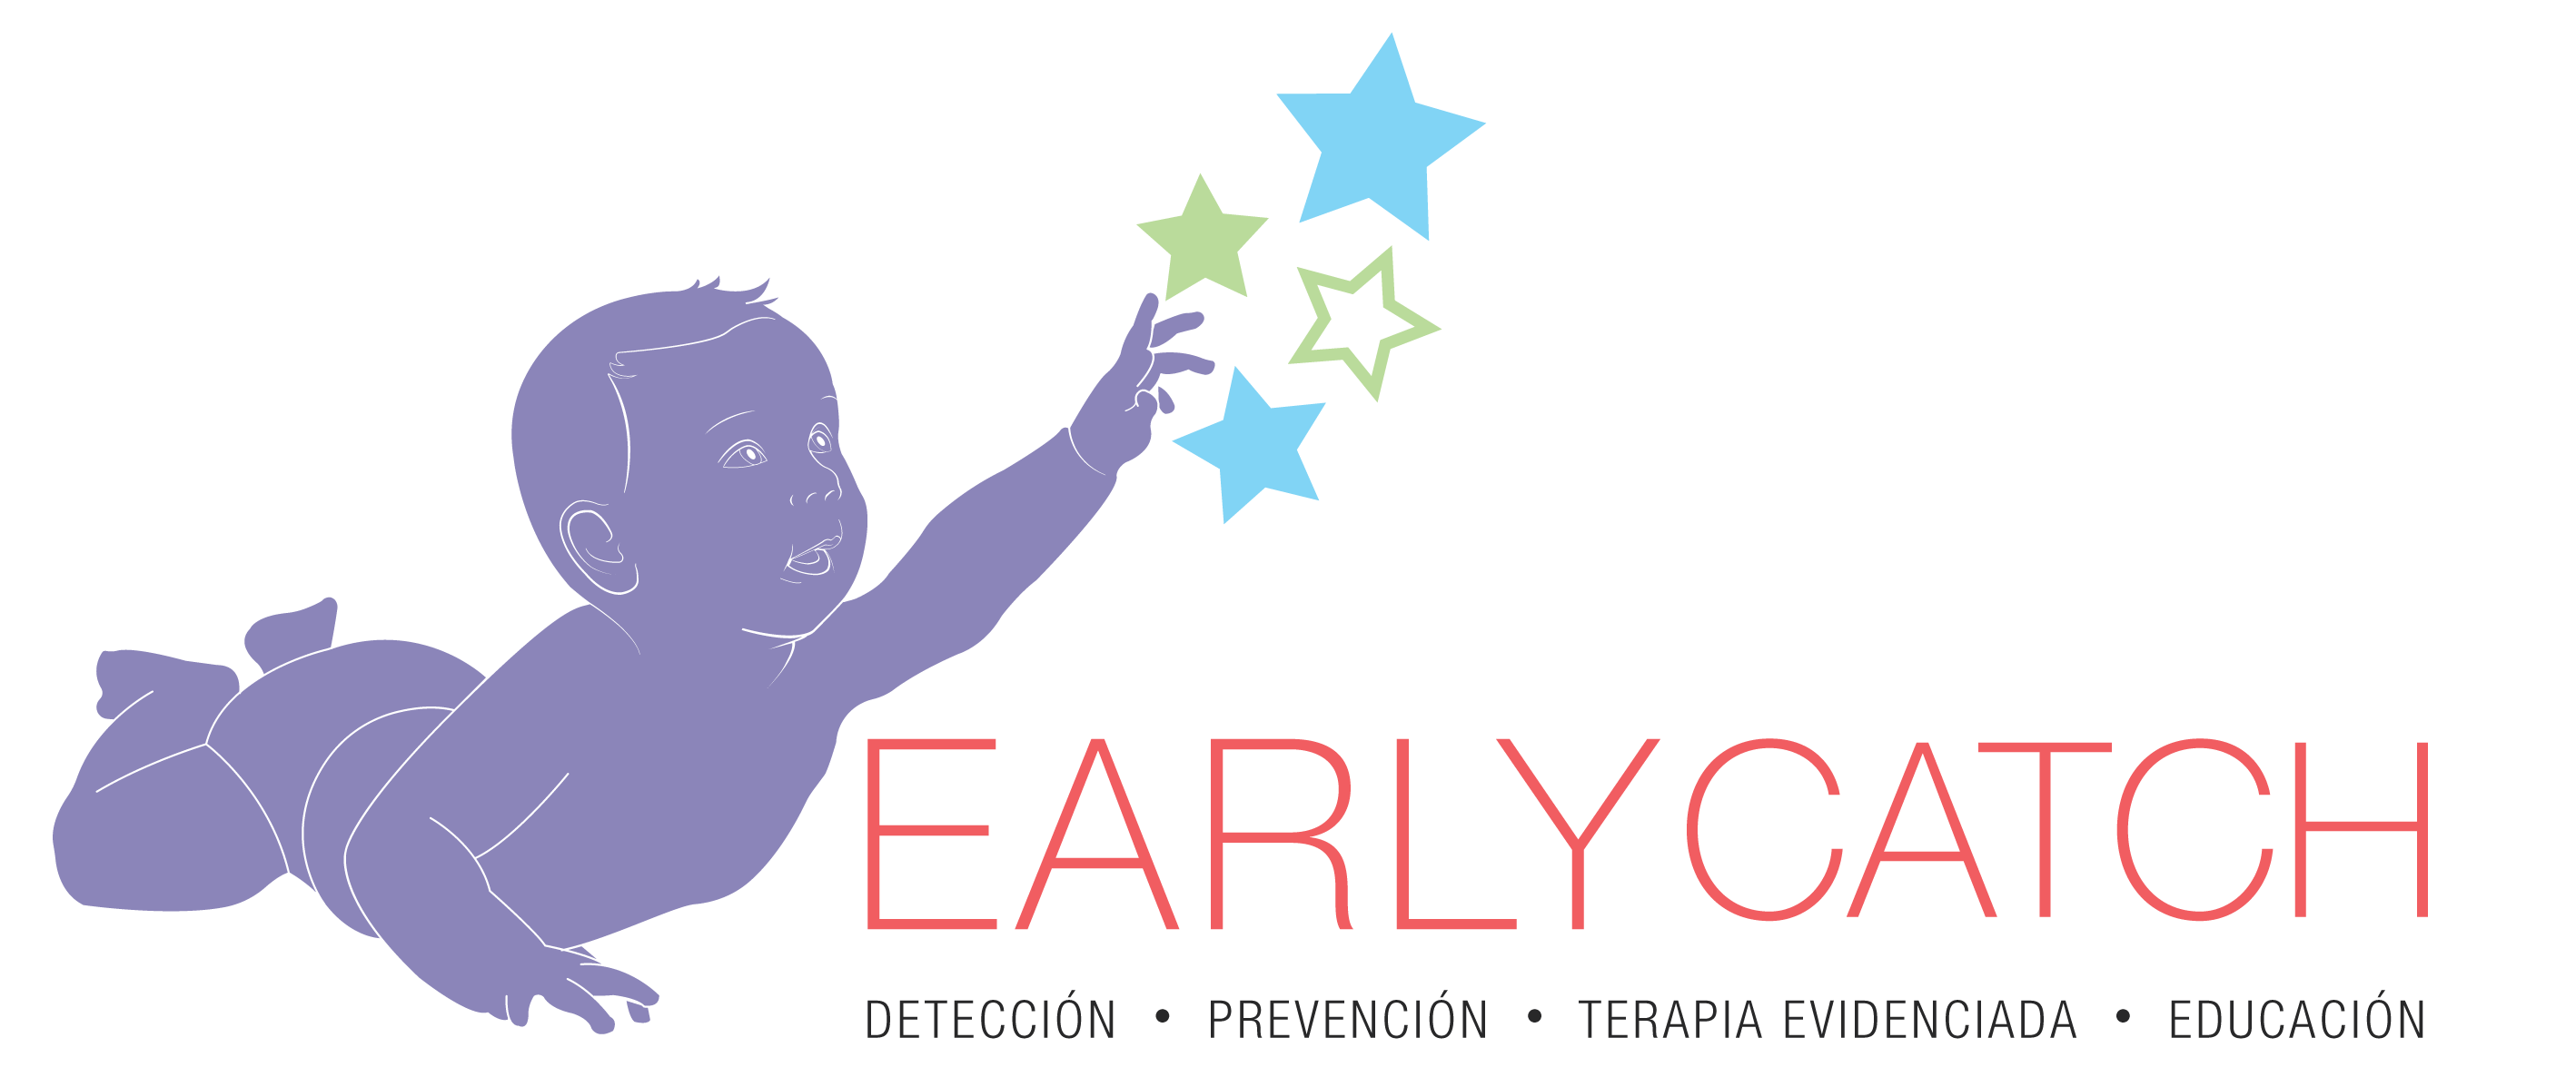 EARLY-CATCH-LOGO WITH FACE